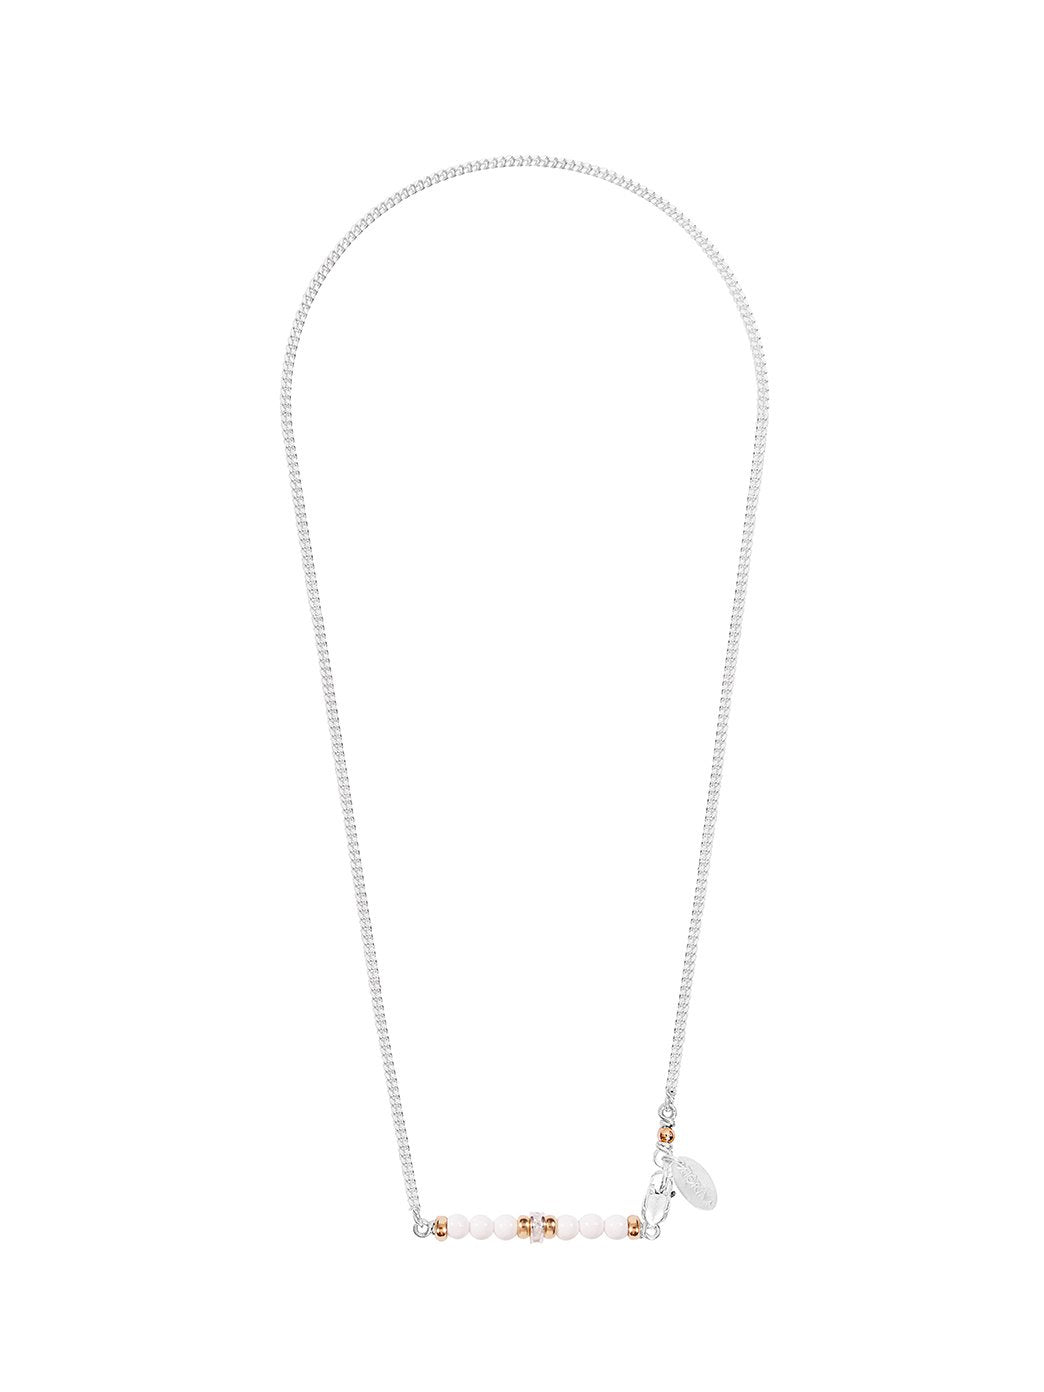 Romance Necklace White